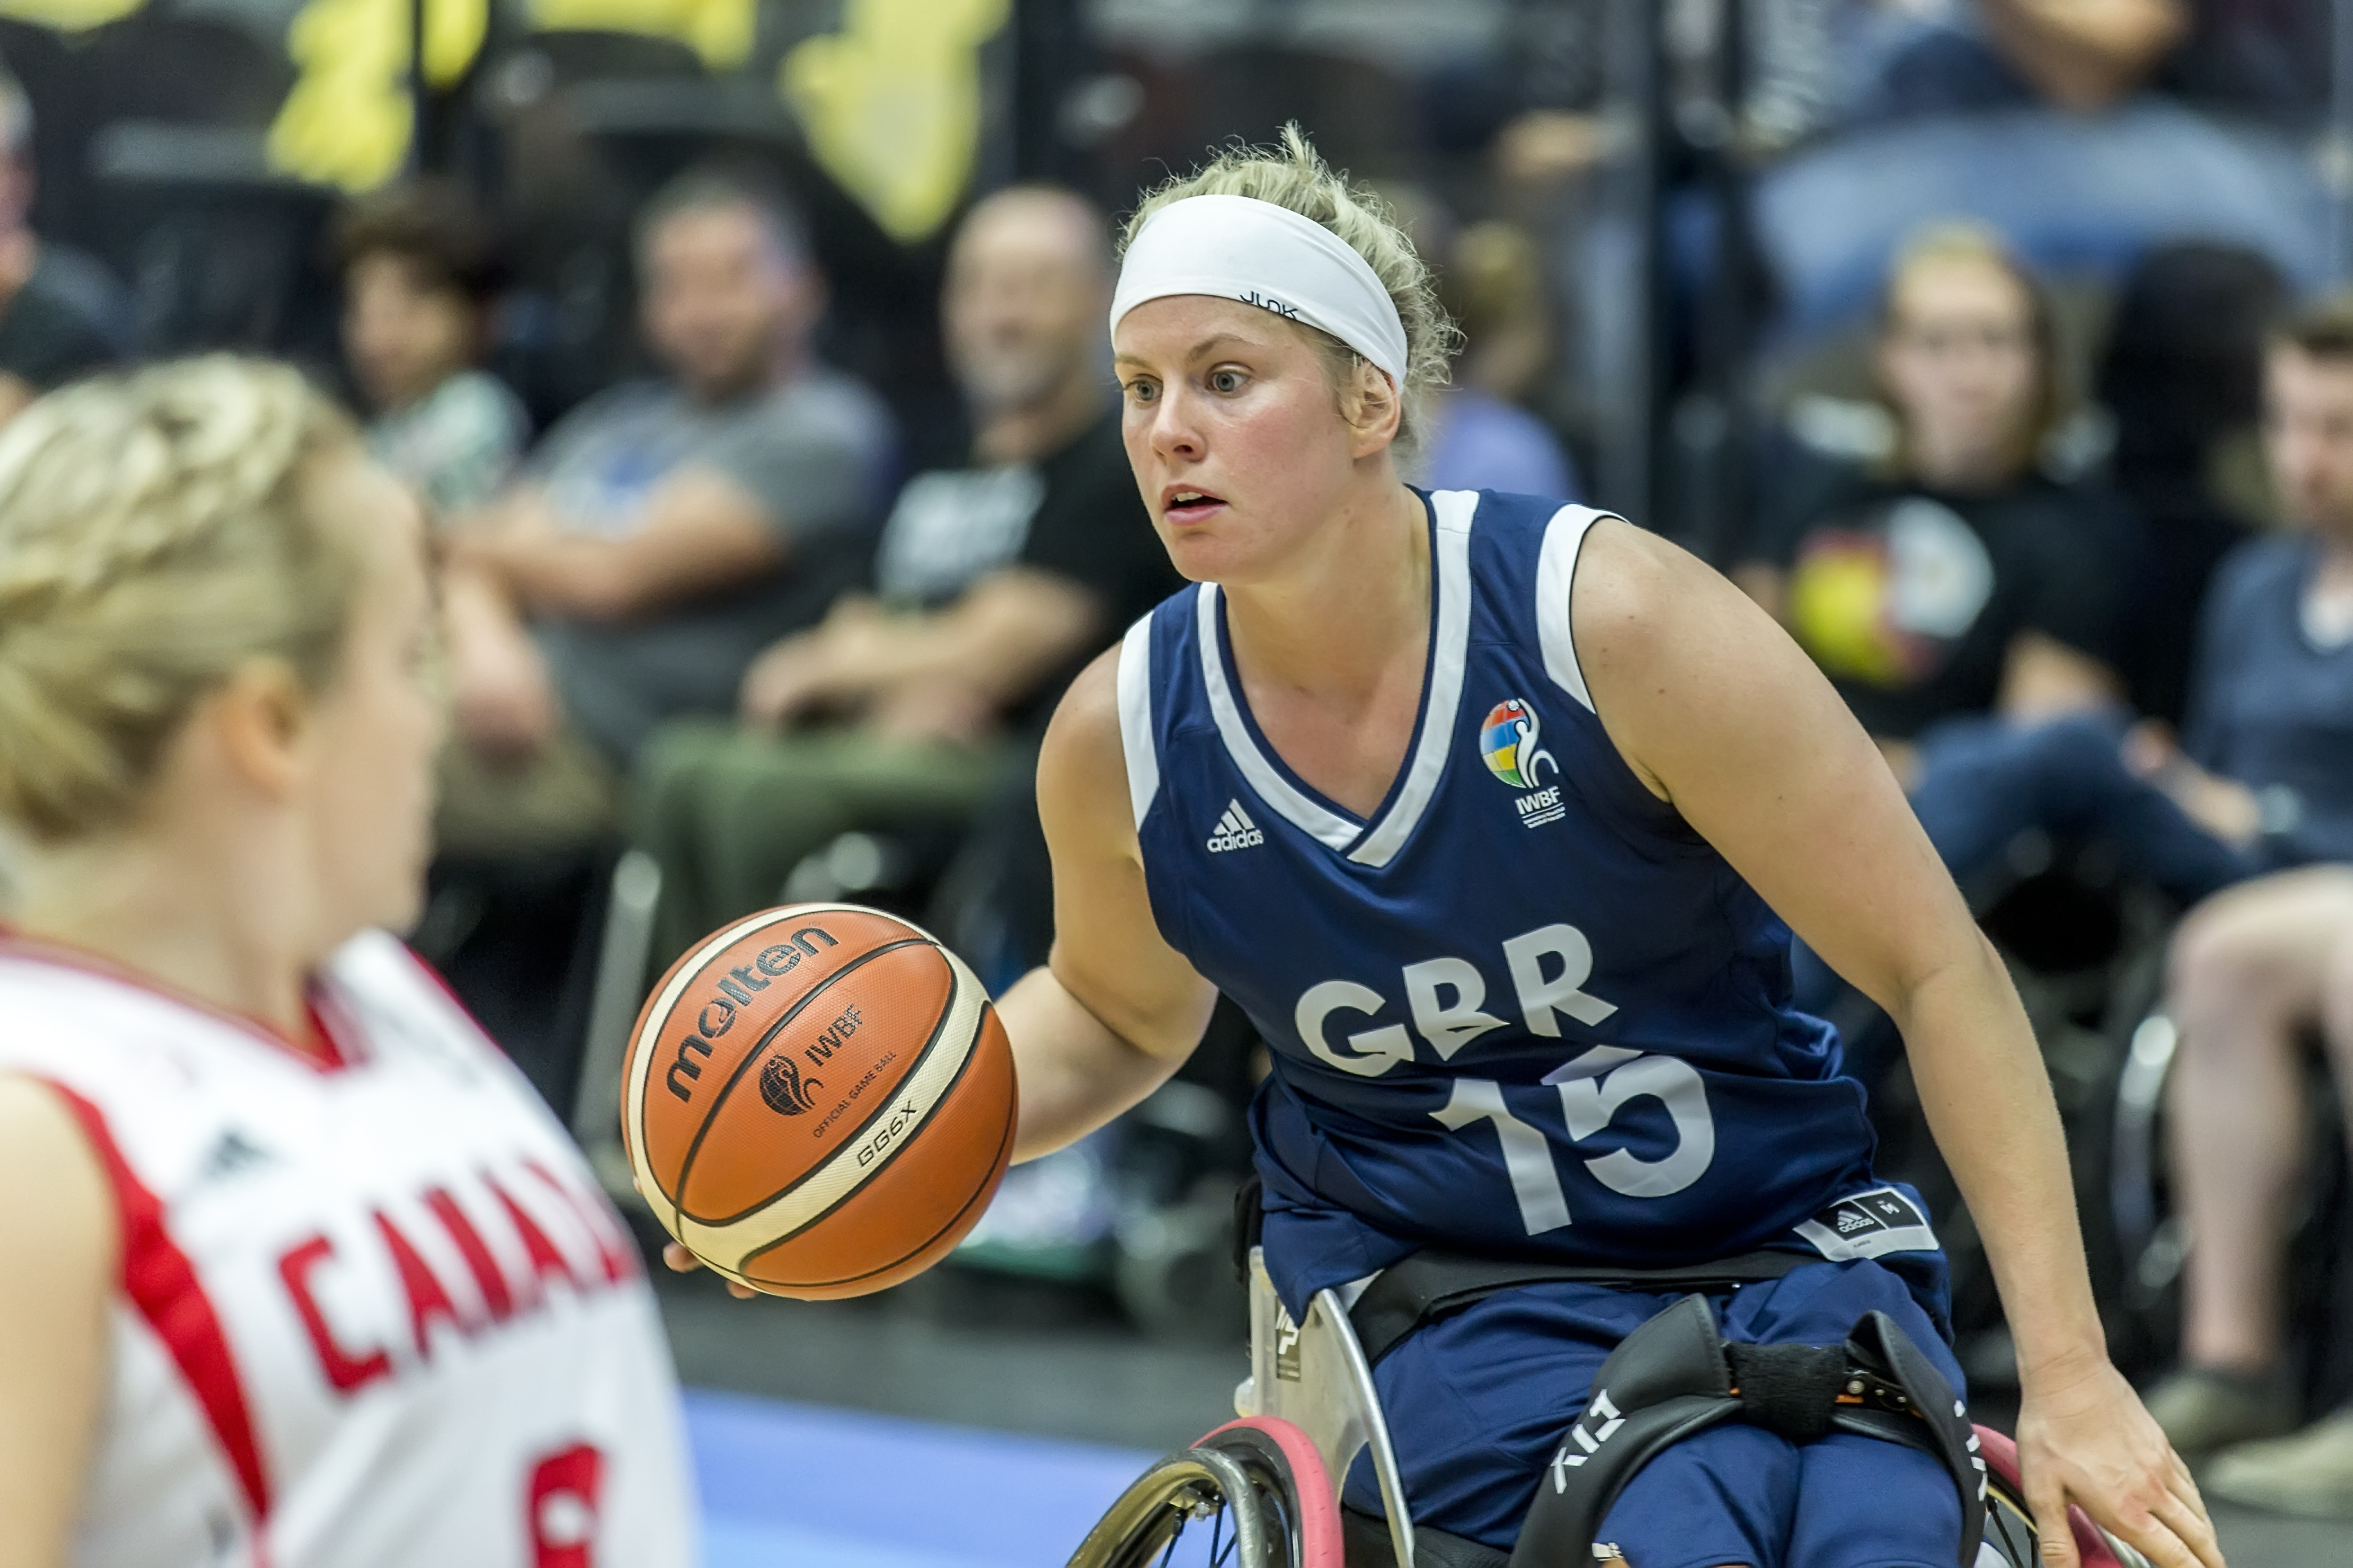 Robyn Love (GB): 'Good opportunity for the women's tournament to be its own entity'